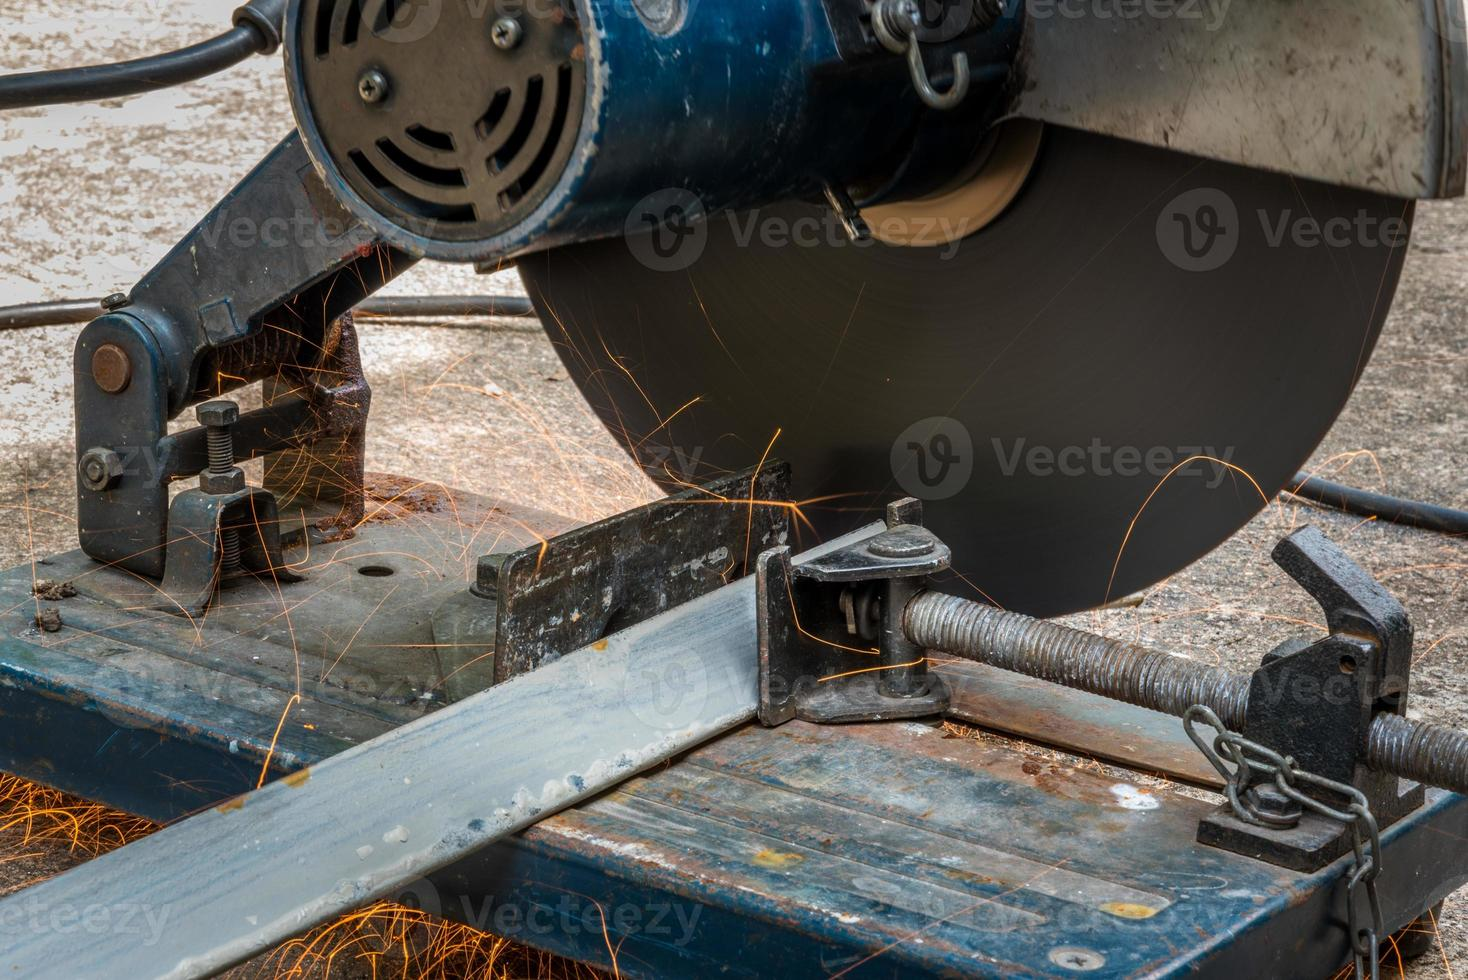 Cutting a triangle metal and steel with compound mitre saw photo